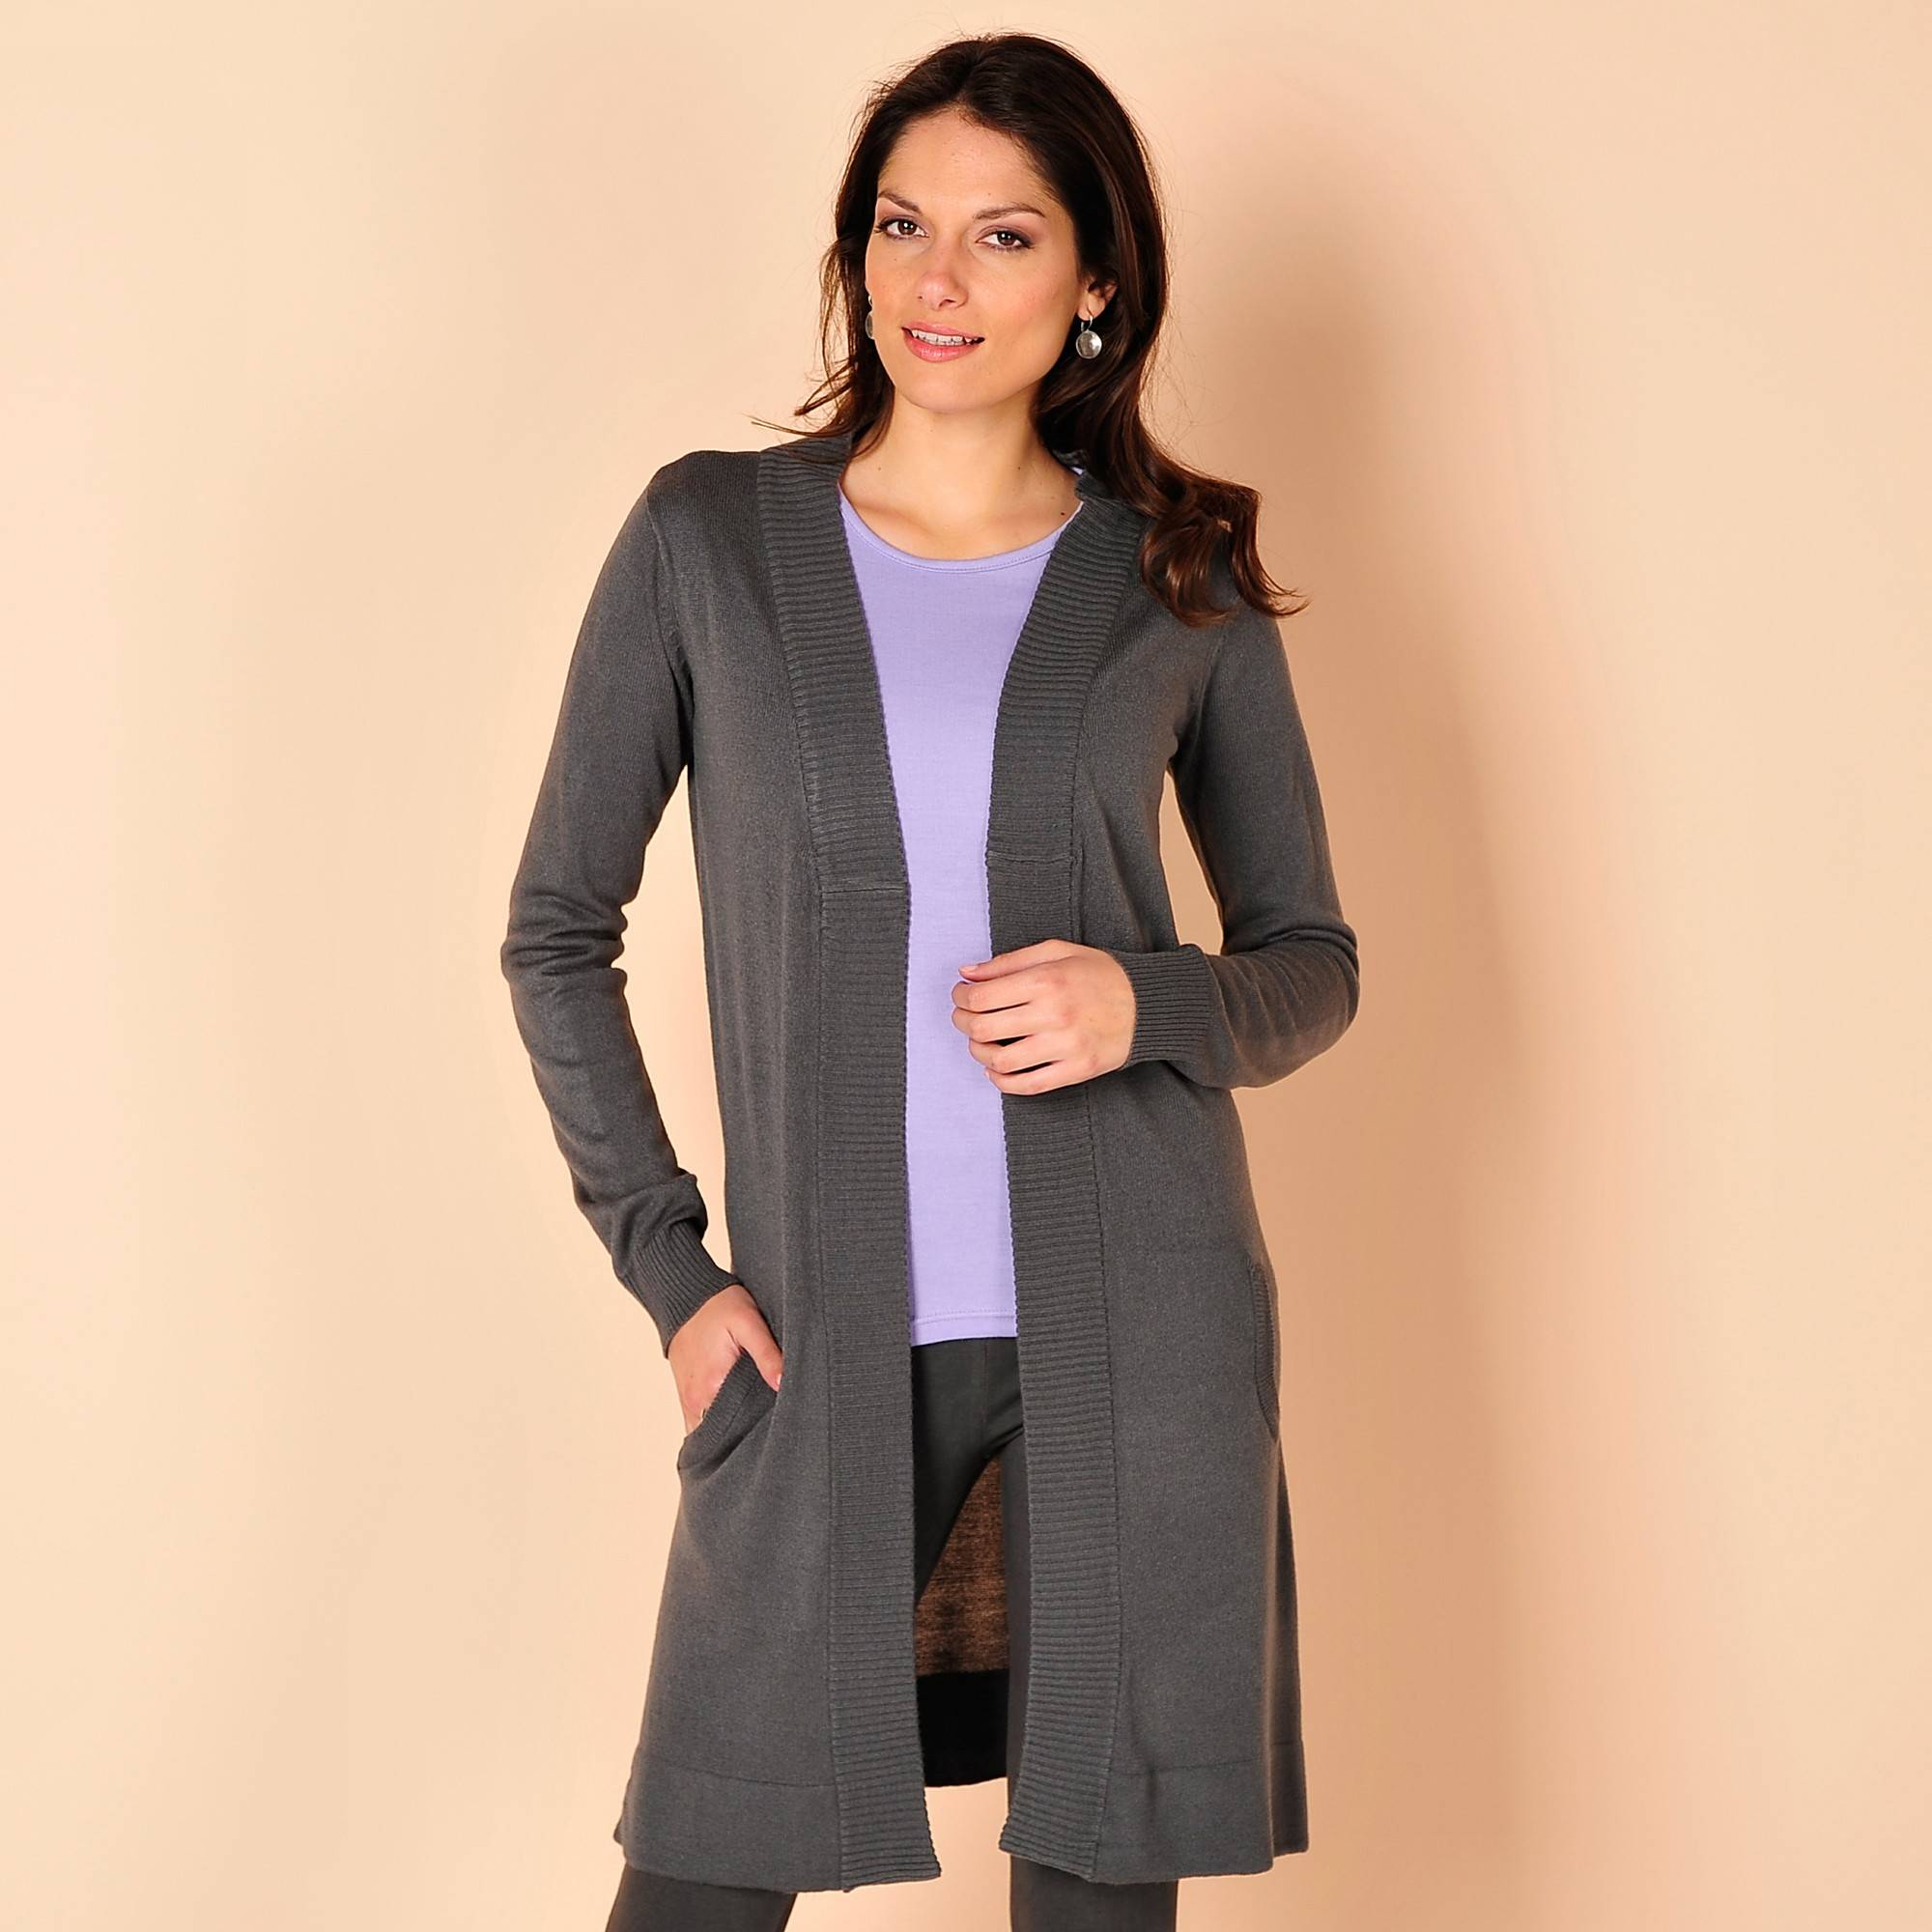 Gilet long - Gris - Taille : 58 - Blancheporte